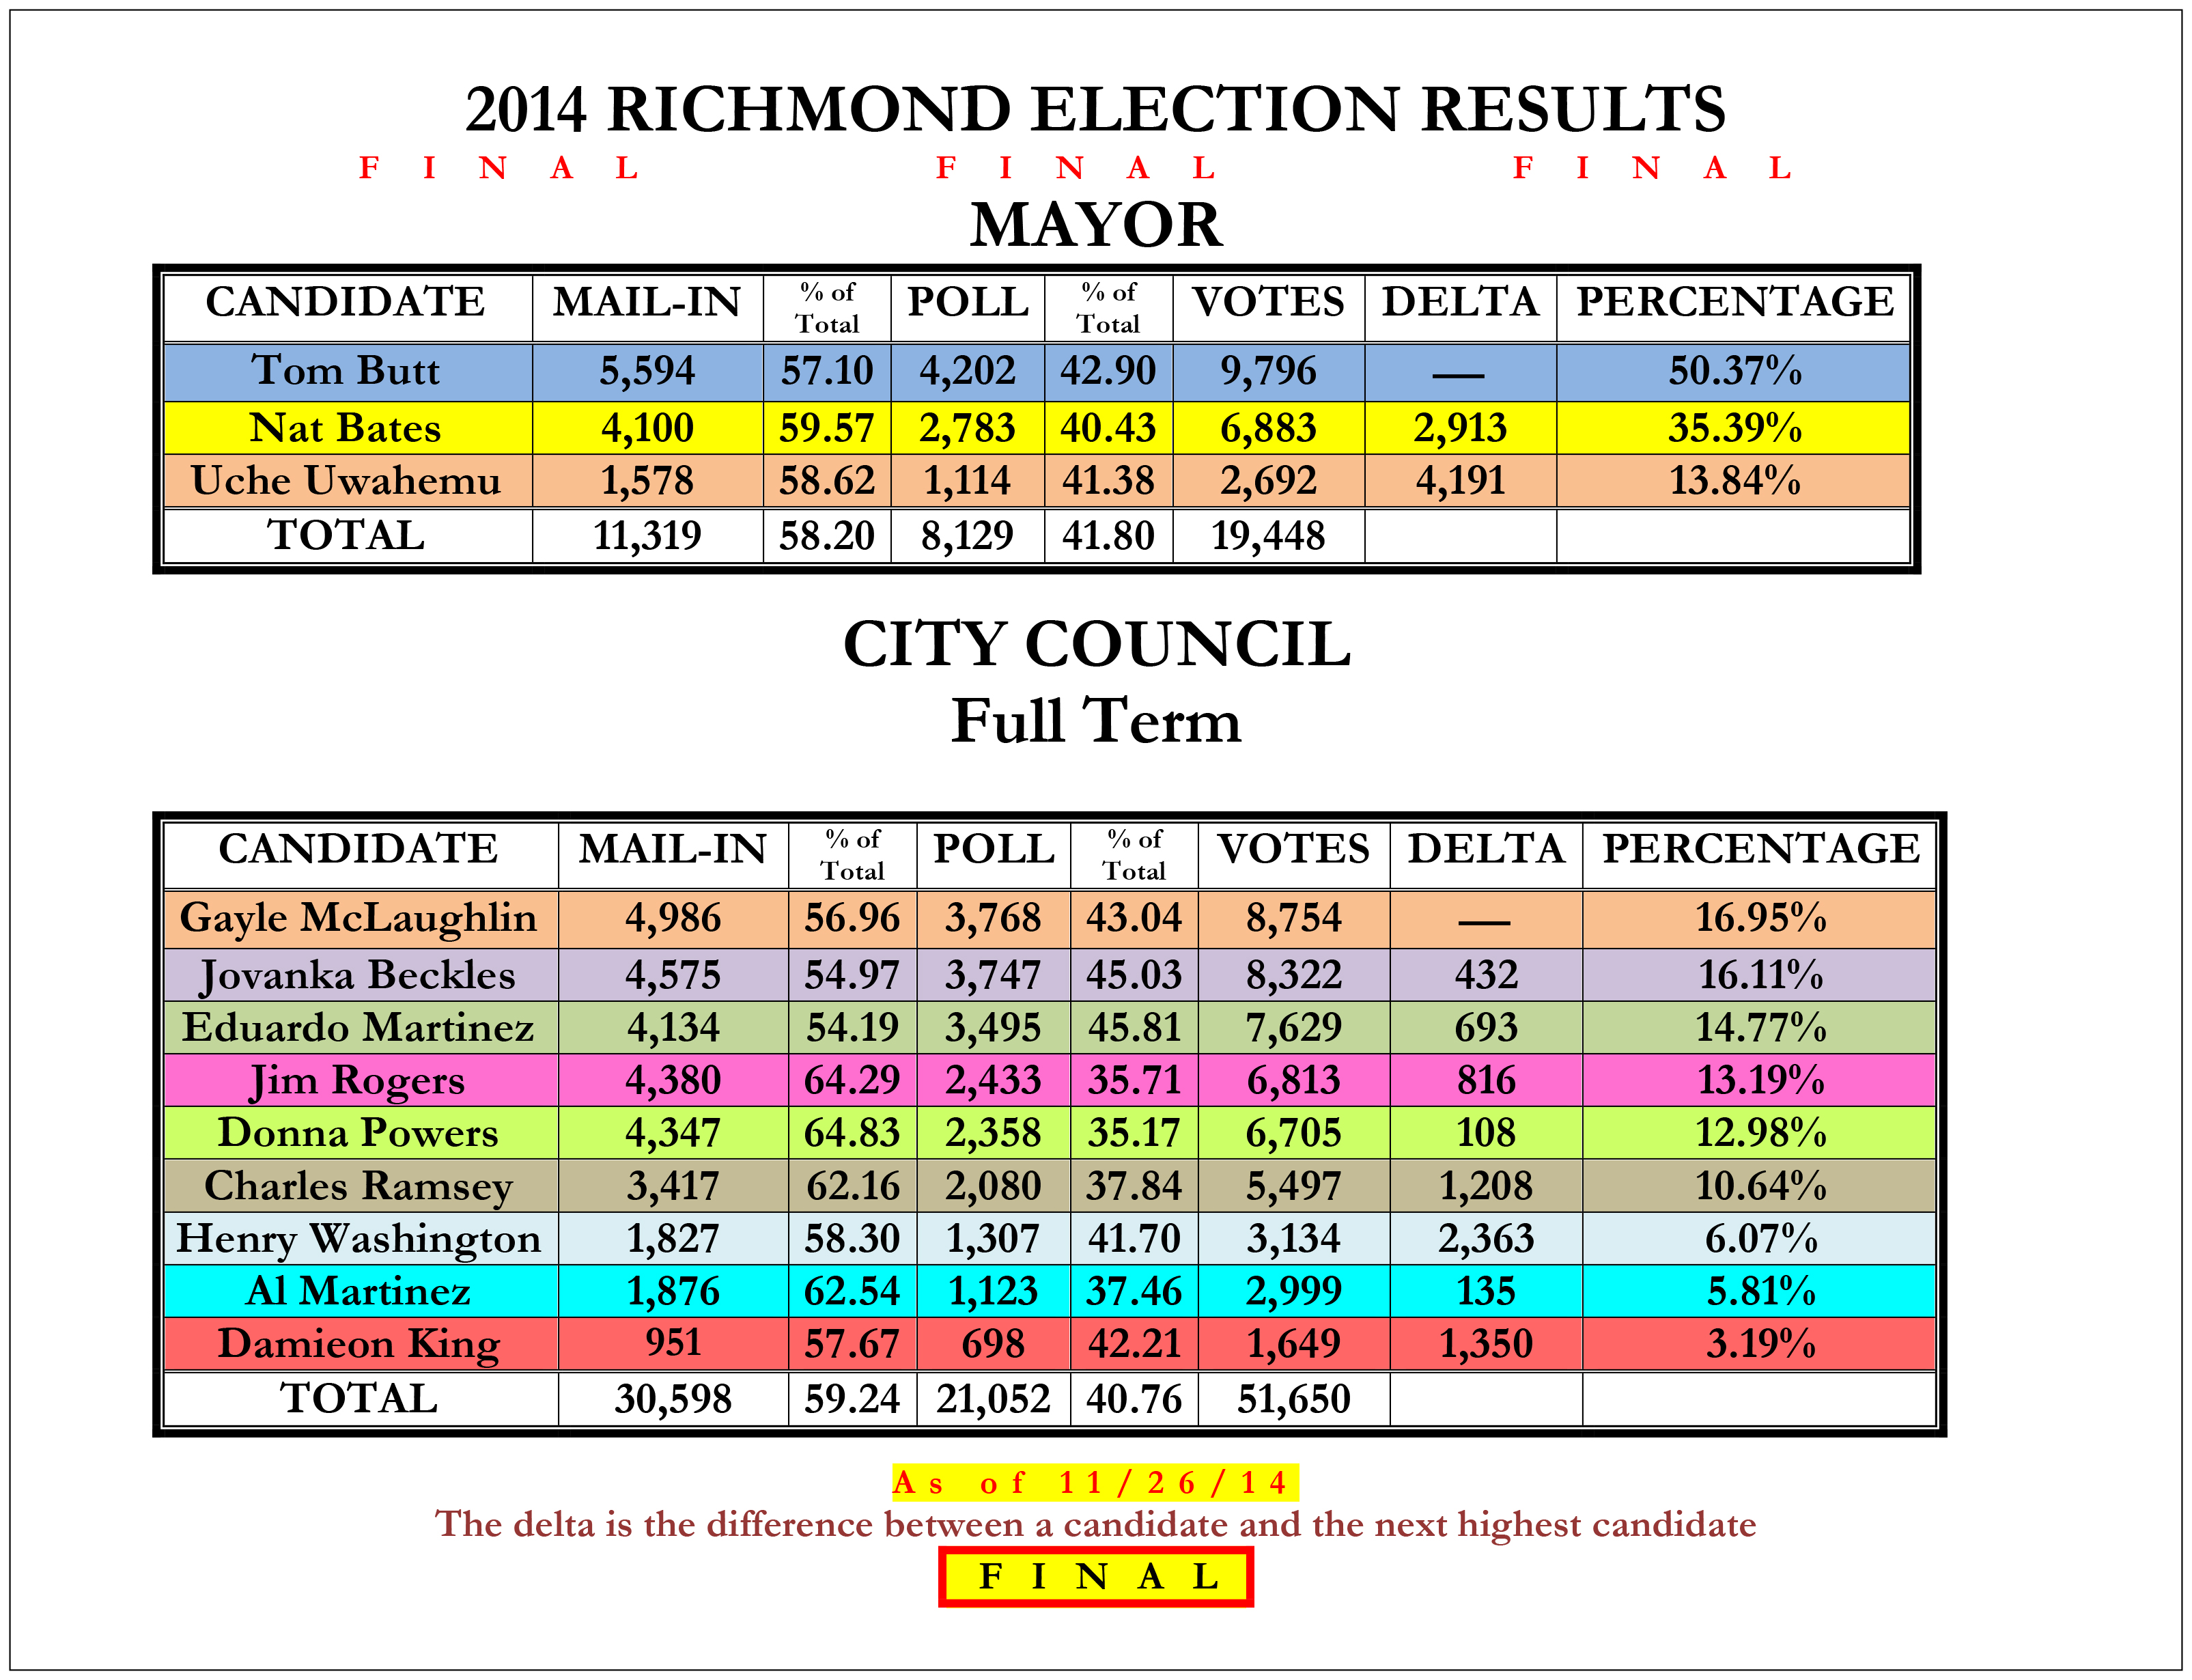 Mayor_City_Council14_Richmond_Election_Results-4_11-26-14_FINAL-1.jpg